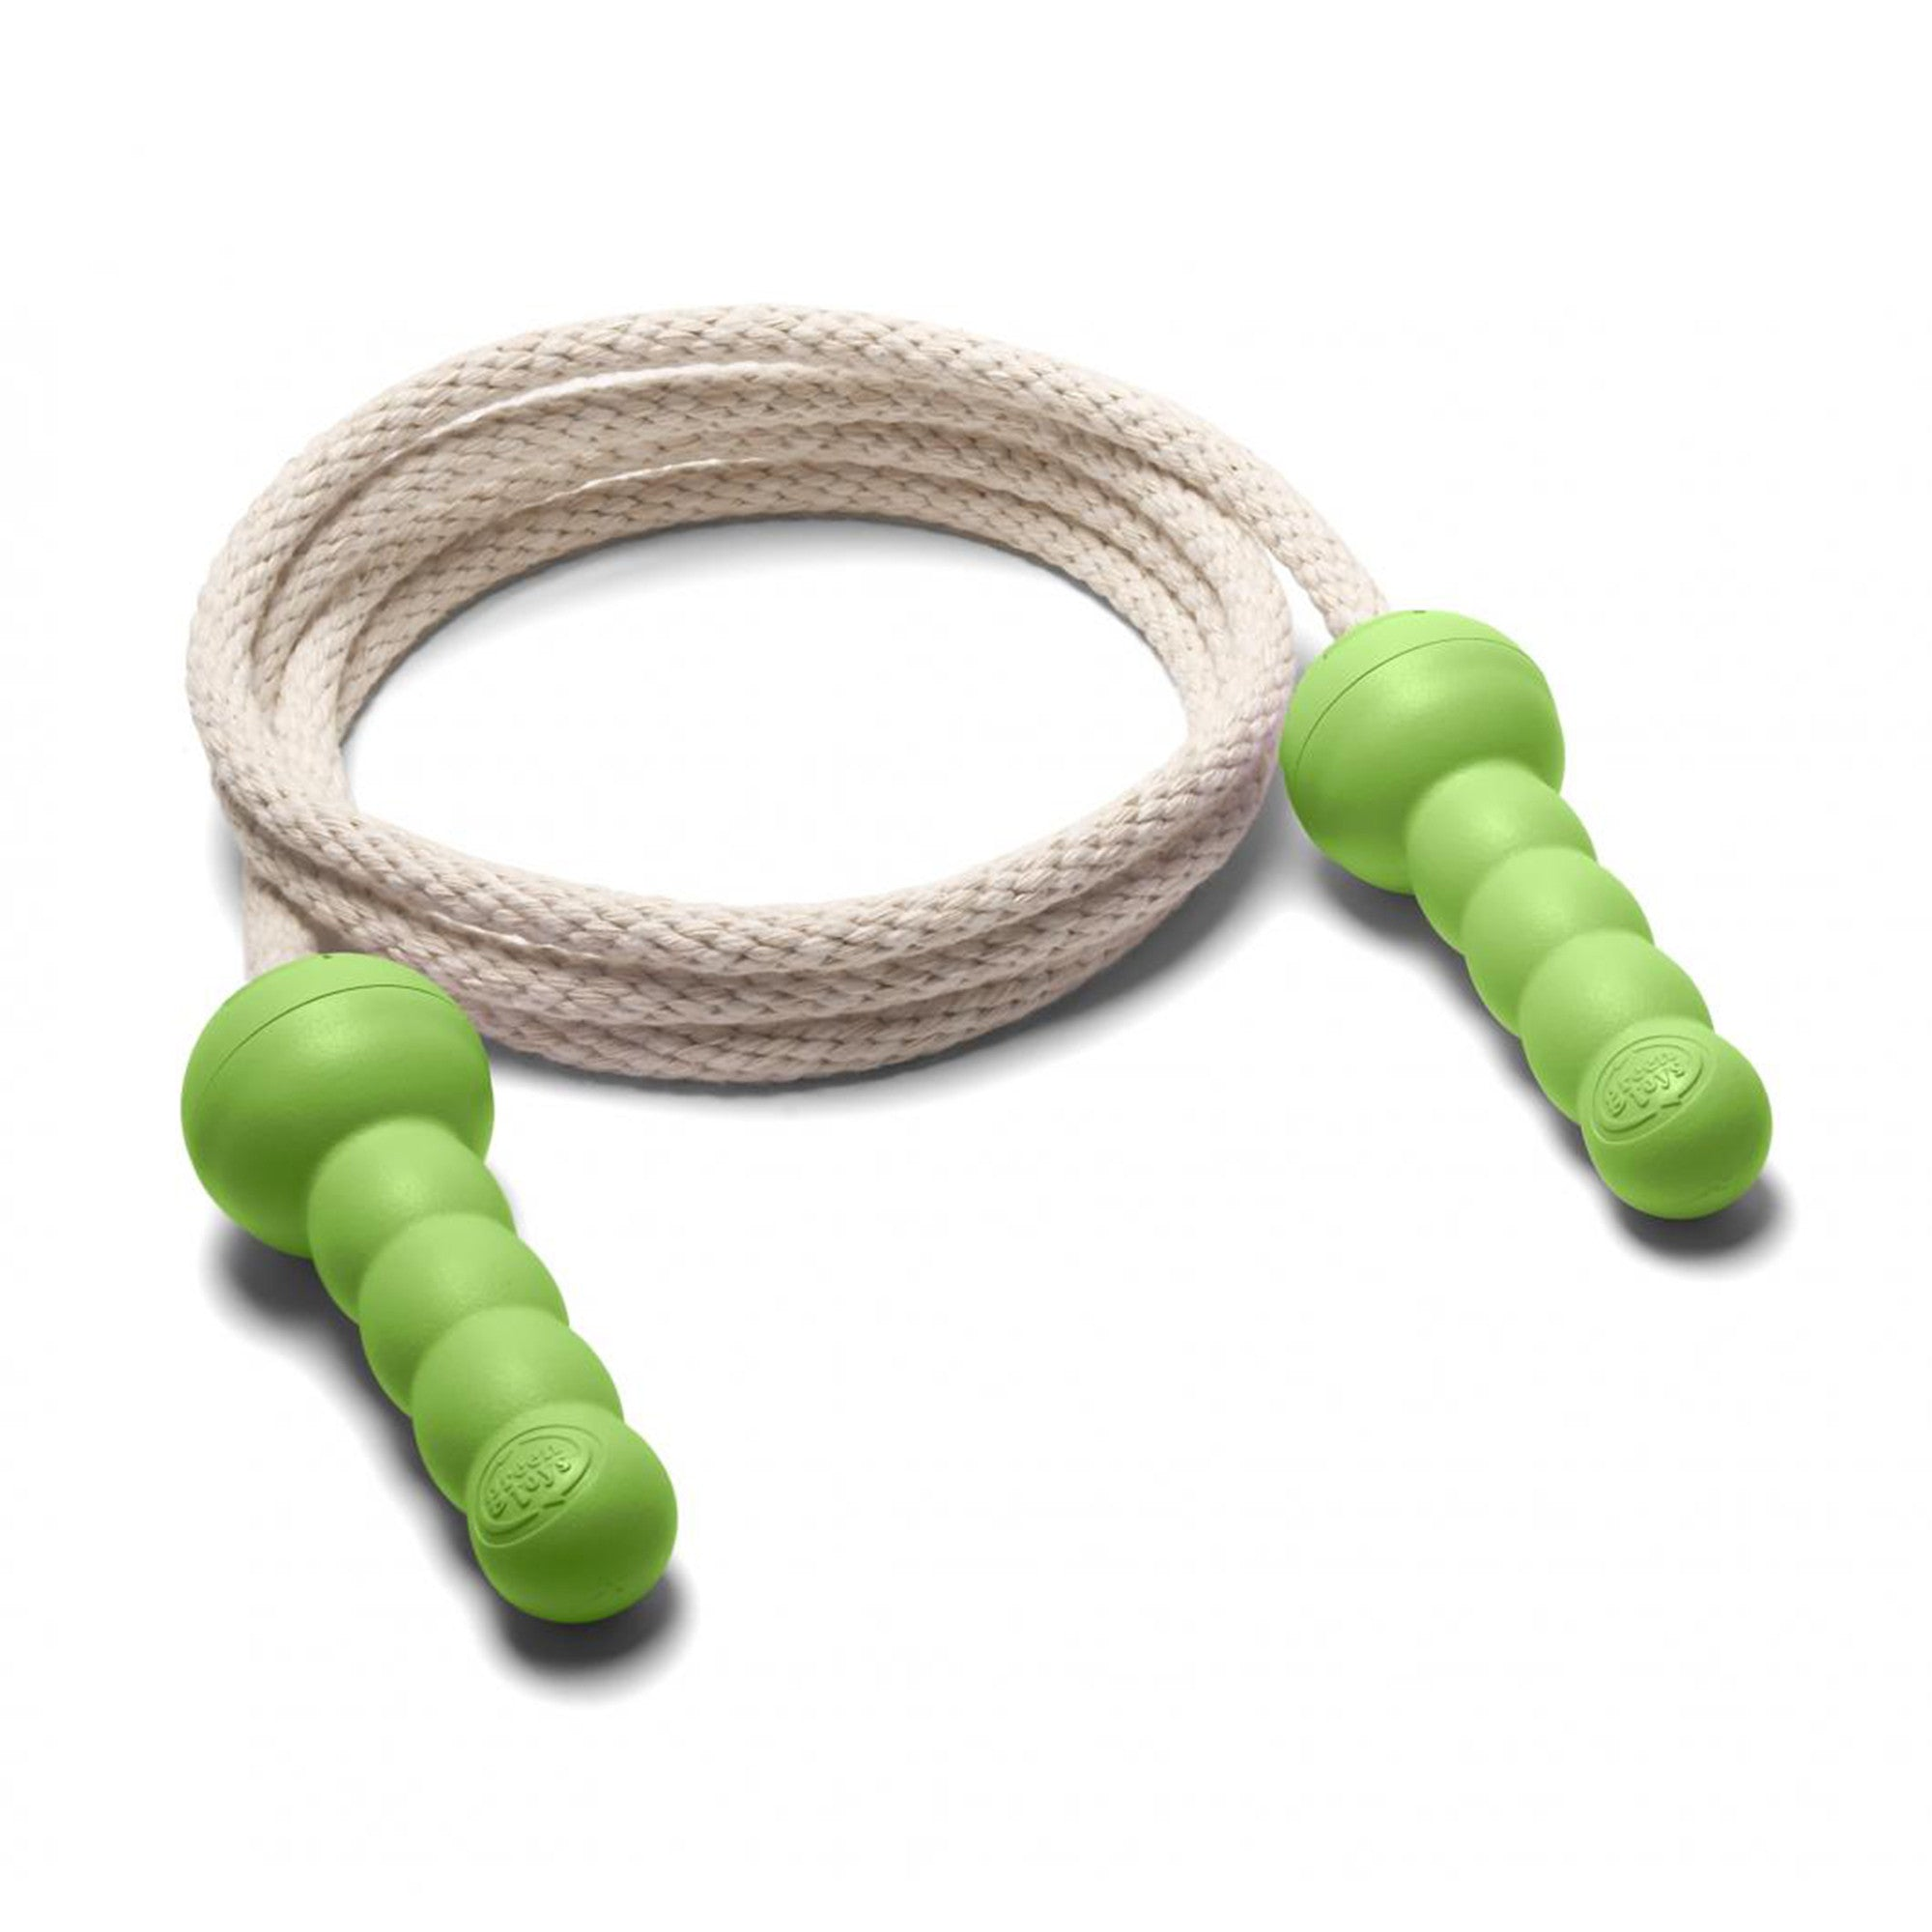 Green Toys Skipping Rope Green Toys Skipping Ropes Green at Little Earth Nest Eco Shop